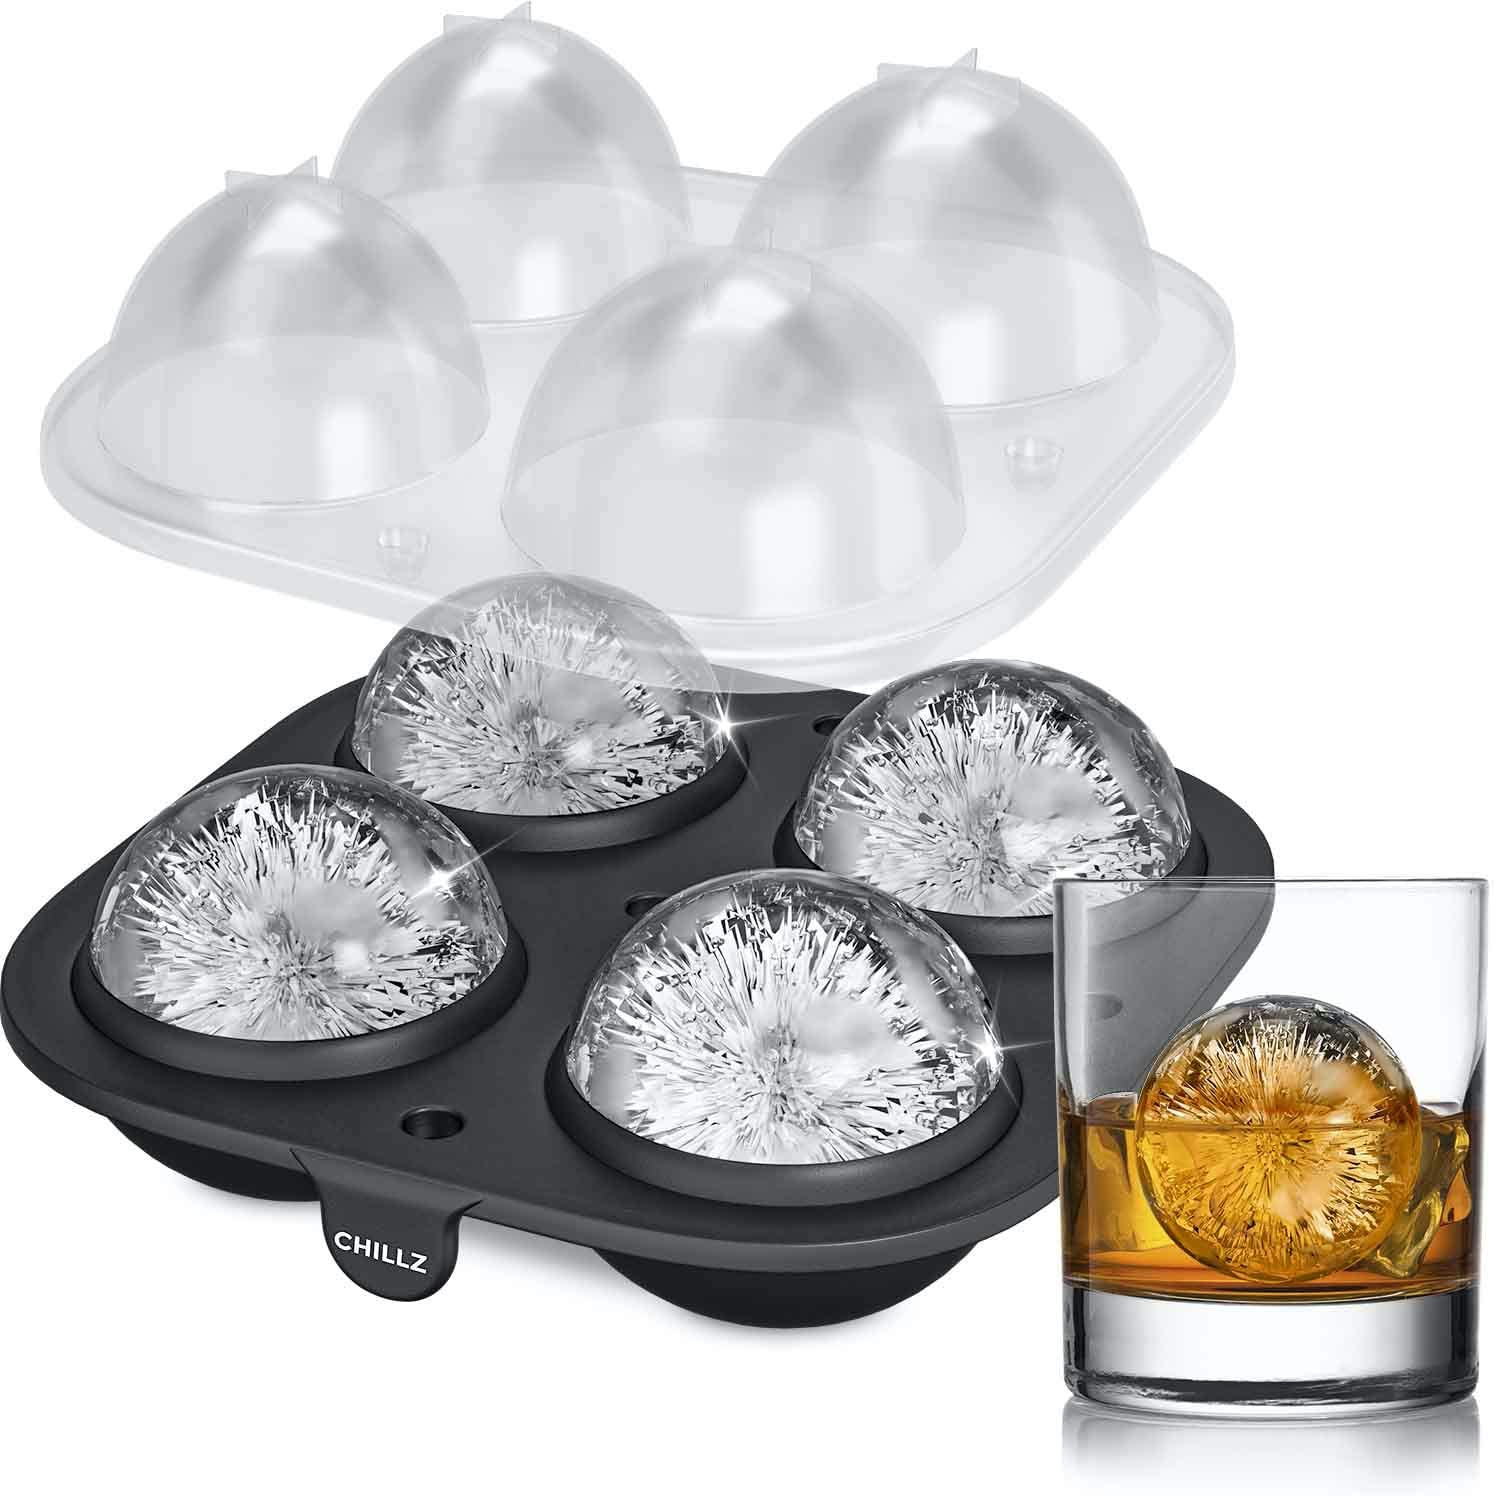 Chillz Extreme Ice Ball Maker - Ice Sphere Mold - Ice Ball Mold Tray - Makes 4 x 2.5 inch Ice Balls (1 Tray)